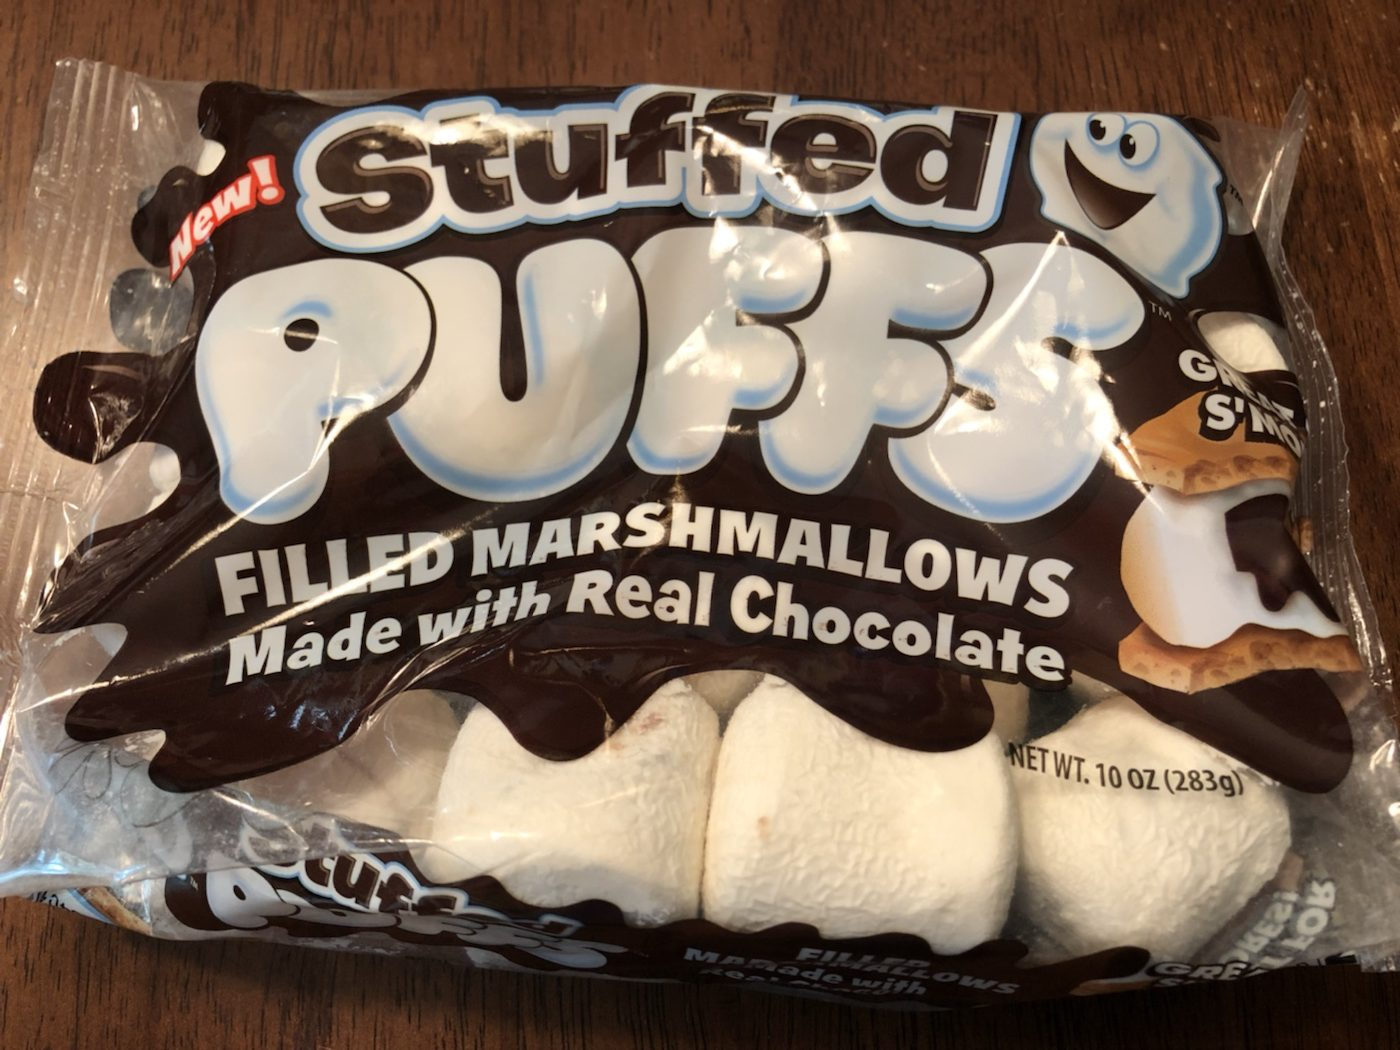 Stuffed Puffs Chocolate-Filled Marshmallows Make S'Mores Much ...